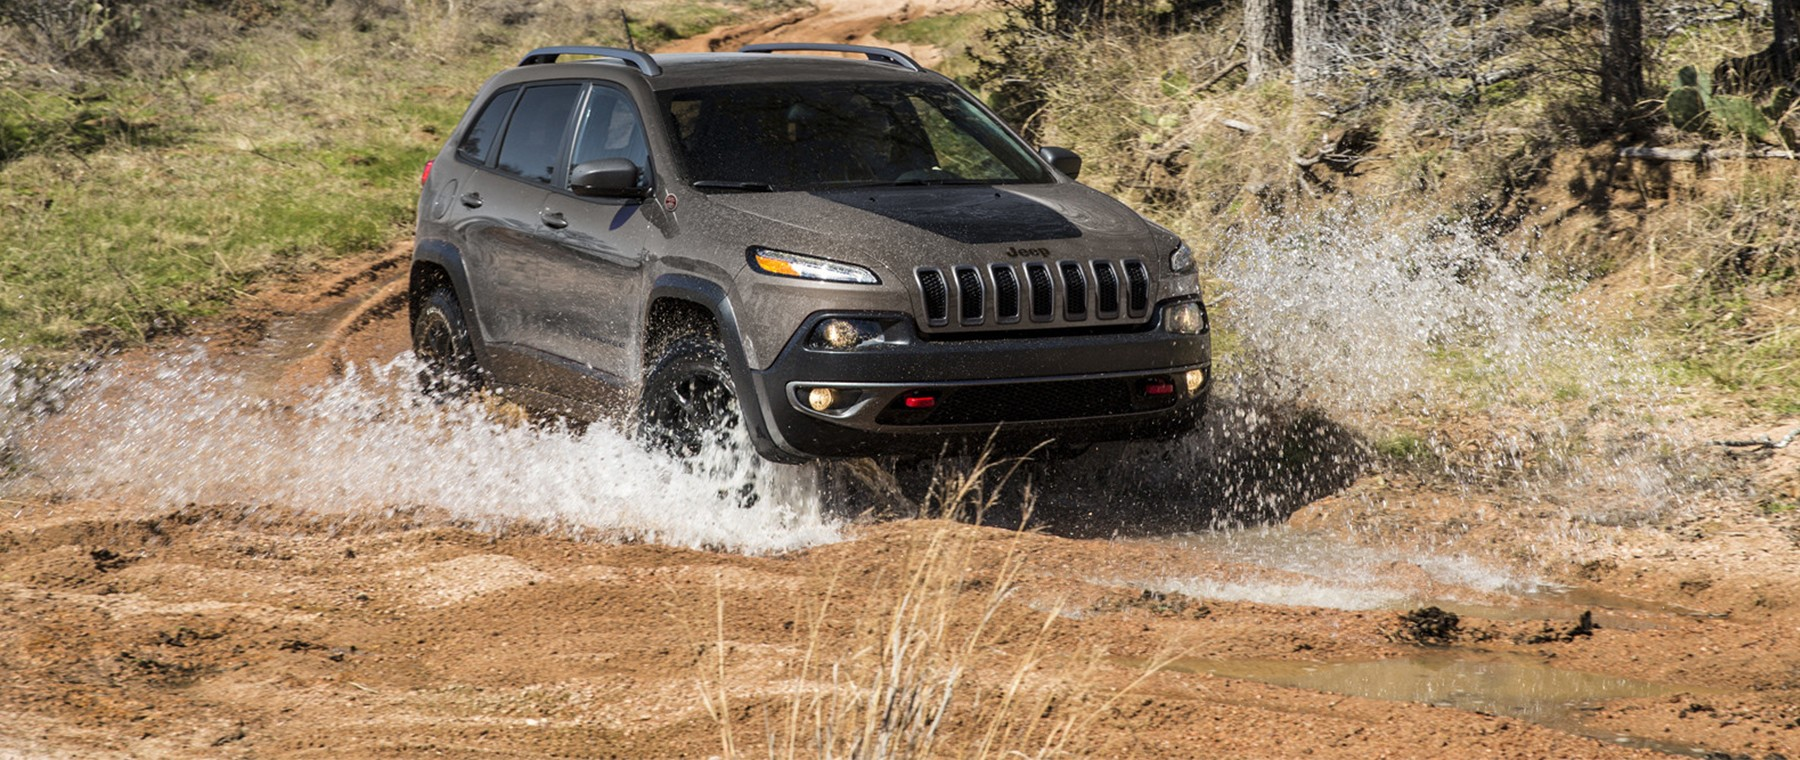 latitude jeep vip financing auto lease product leasing vehicle cherokee and